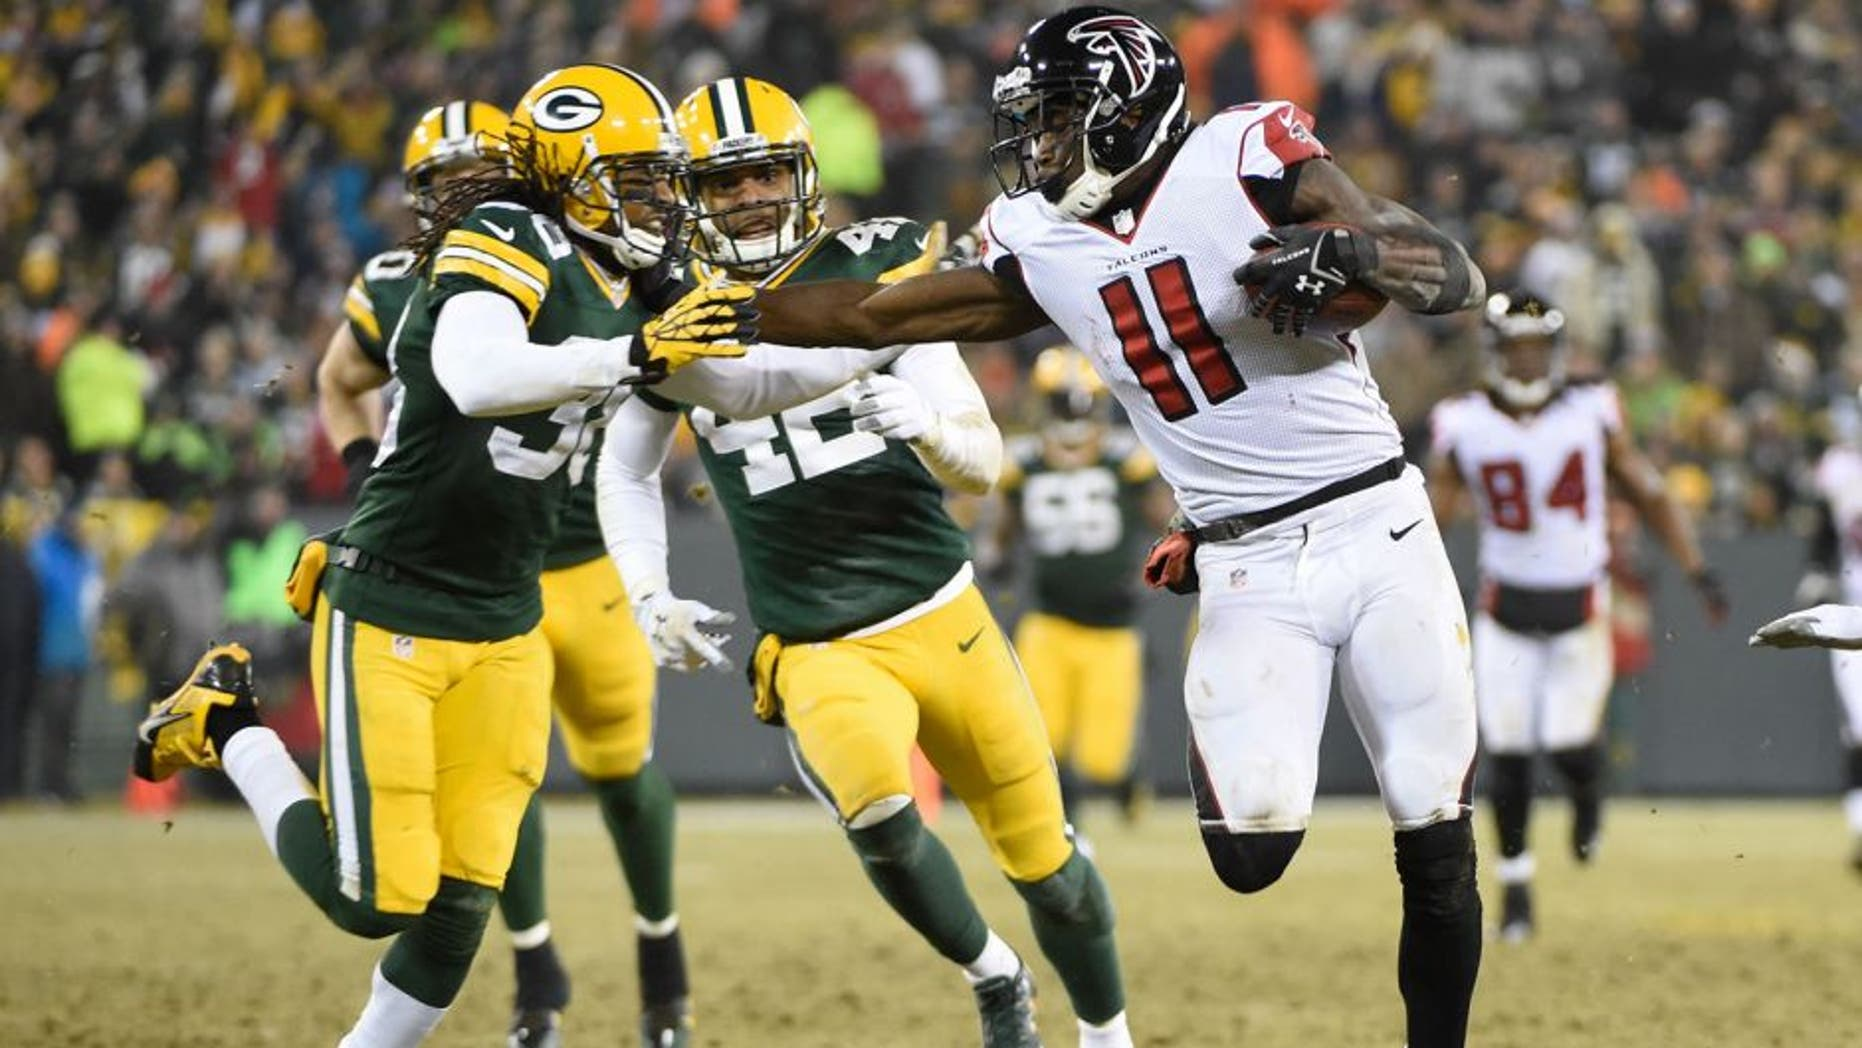 Dec 8, 2014; Green Bay, WI, USA; Atlanta Falcons wide receiver Julio Jones (11) tries to break away from Green Bay Packers cornerback Tramon Williams (38) after catching a pss in the third quarter at Lambeau Field. Mandatory Credit: Benny Sieu-USA TODAY Sports